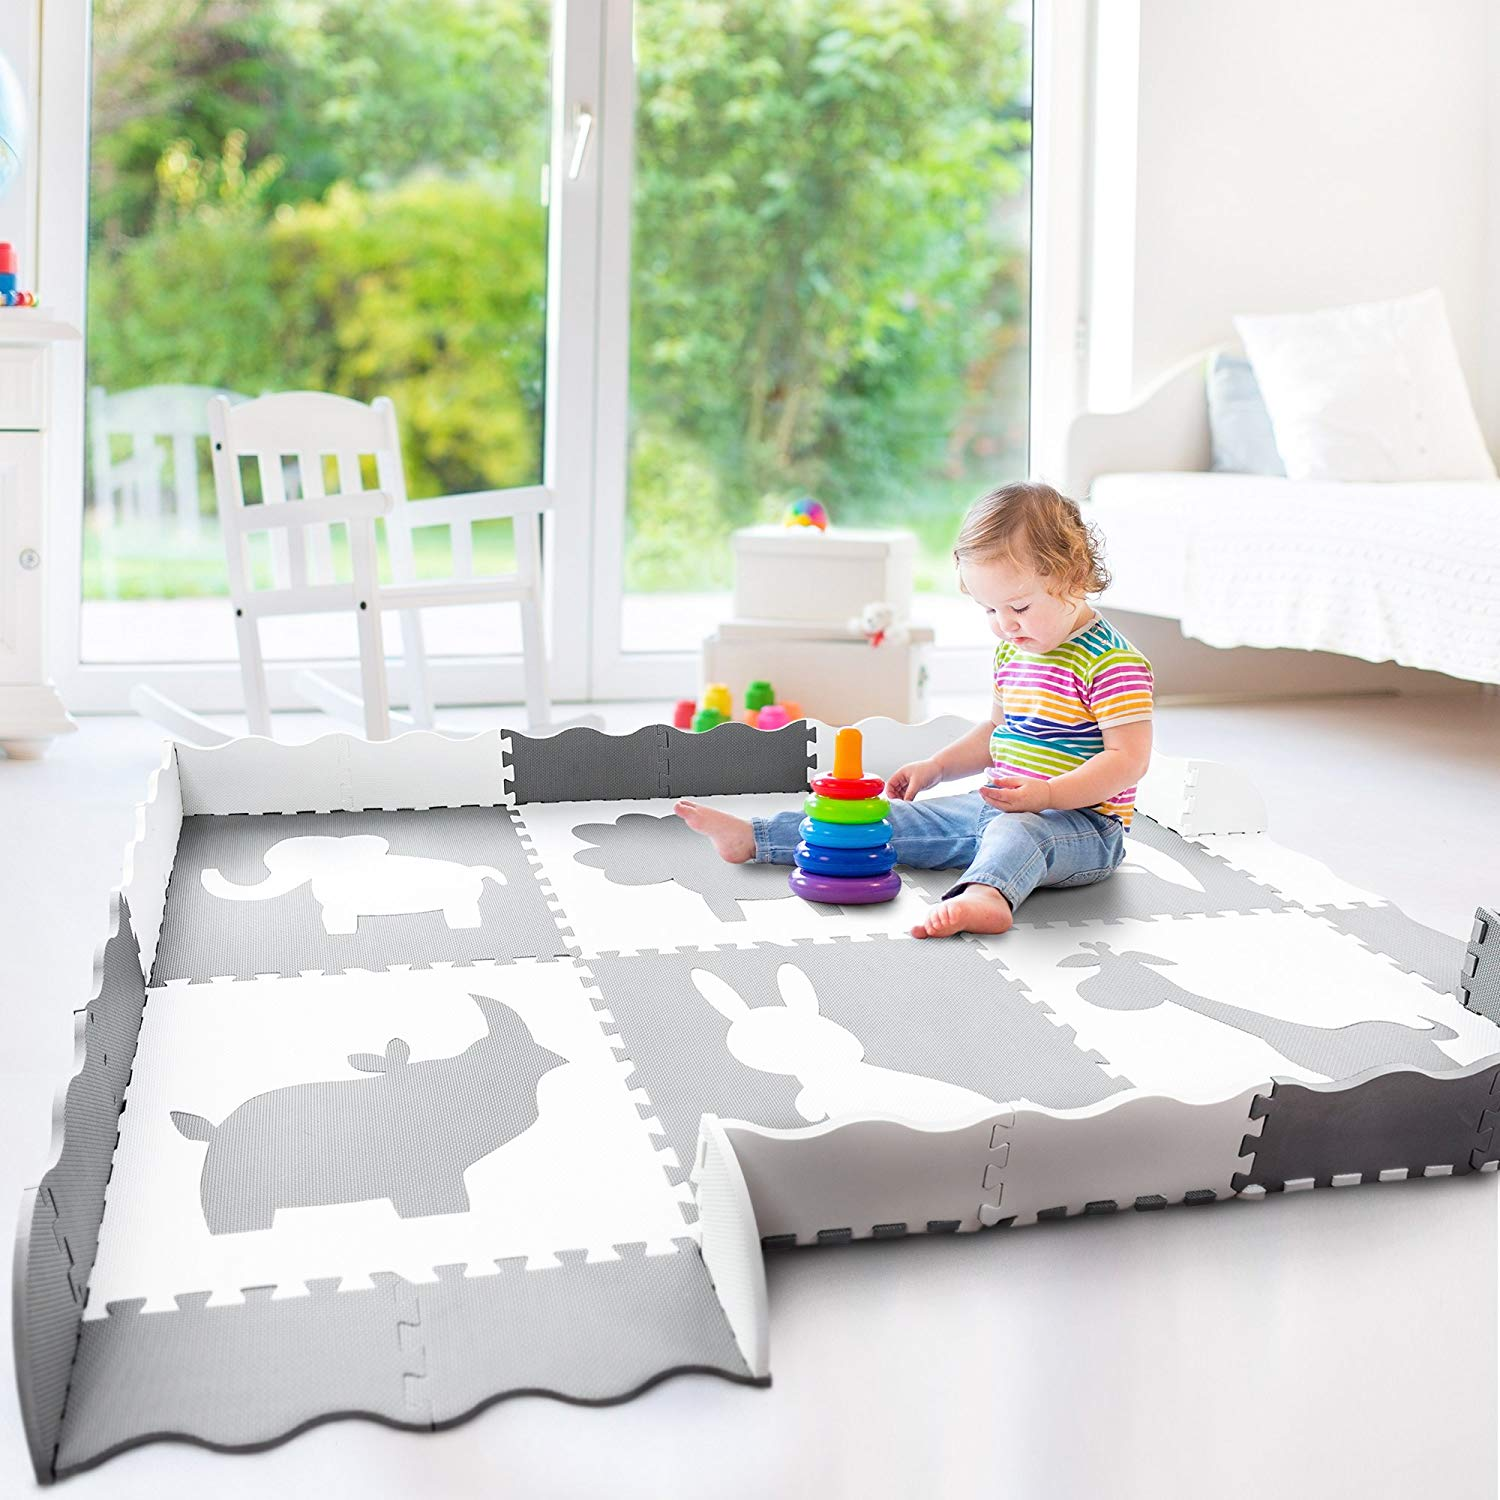 Charmant Large Baby Play Mat (5x7u0027) | Soft, Thick, Foam Floor Mat For ...